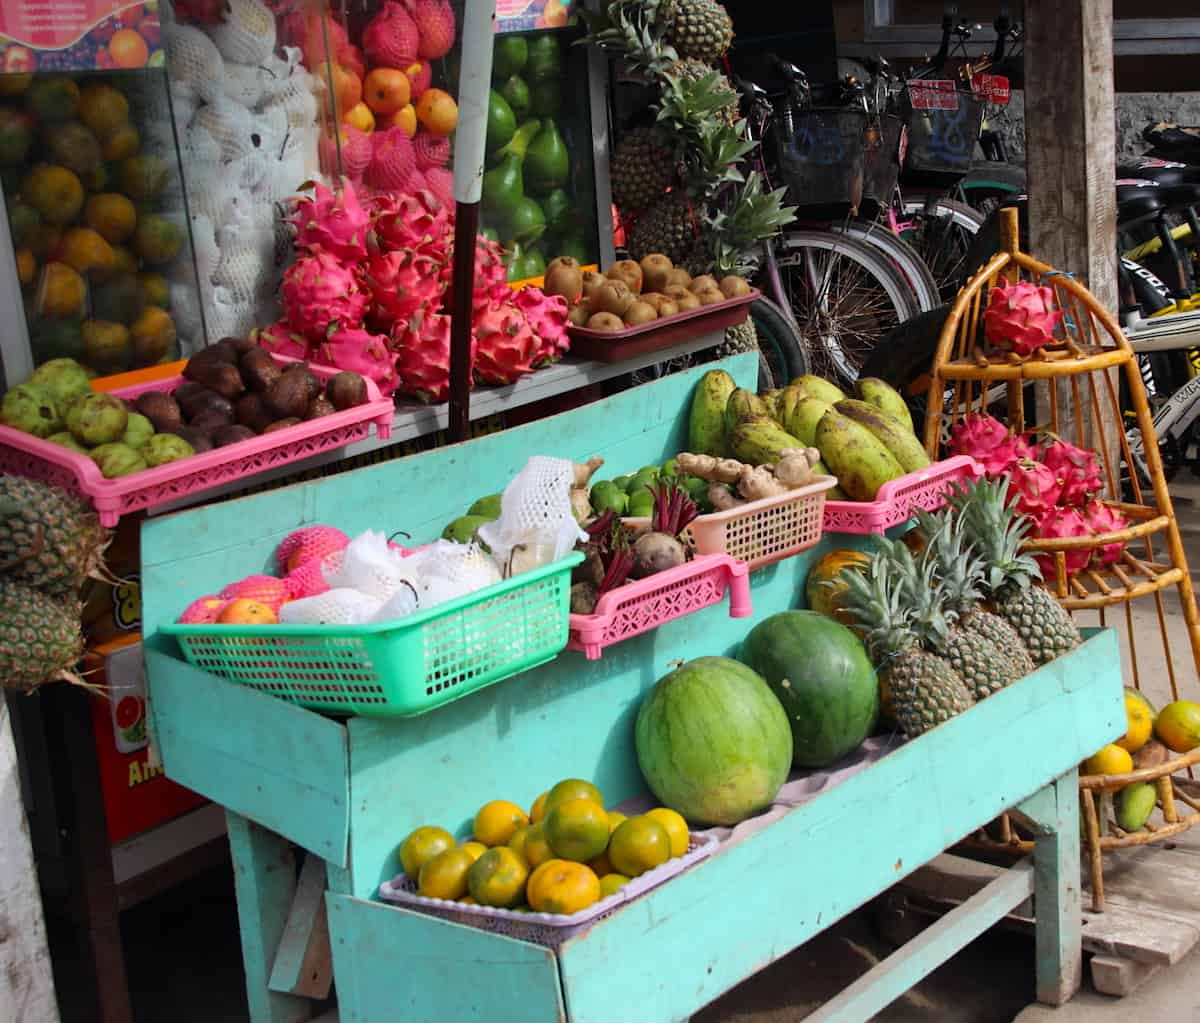 Food market fruit stand in Indonesia.